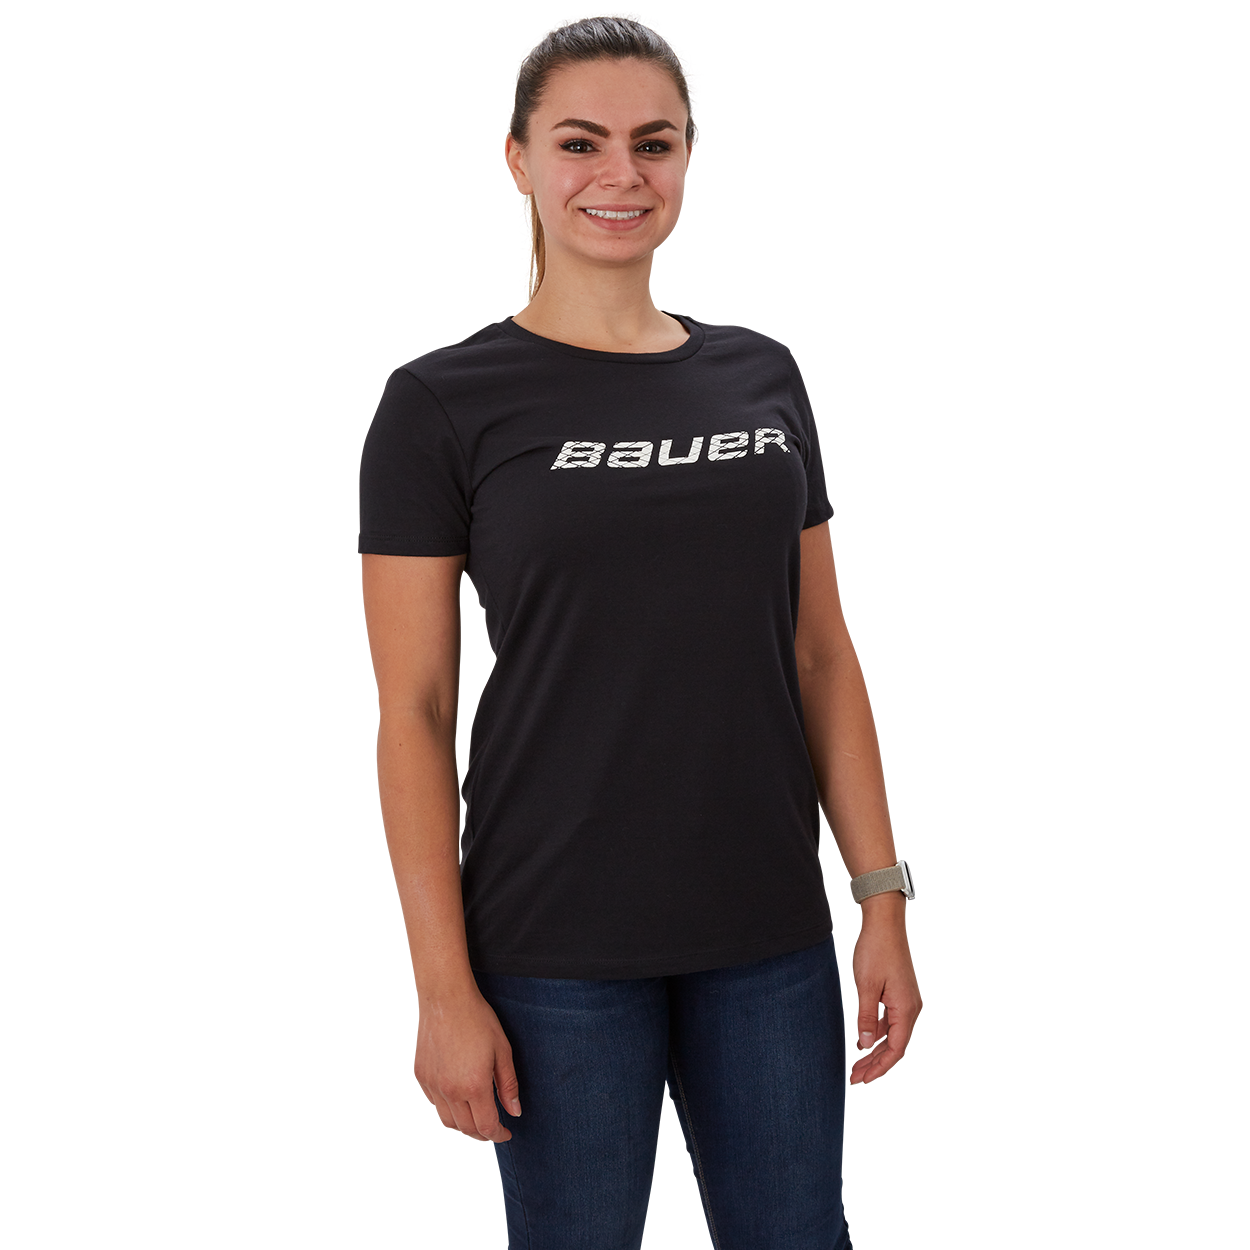 Short Sleeve Women's T-Shirt with Graphic,Black,medium